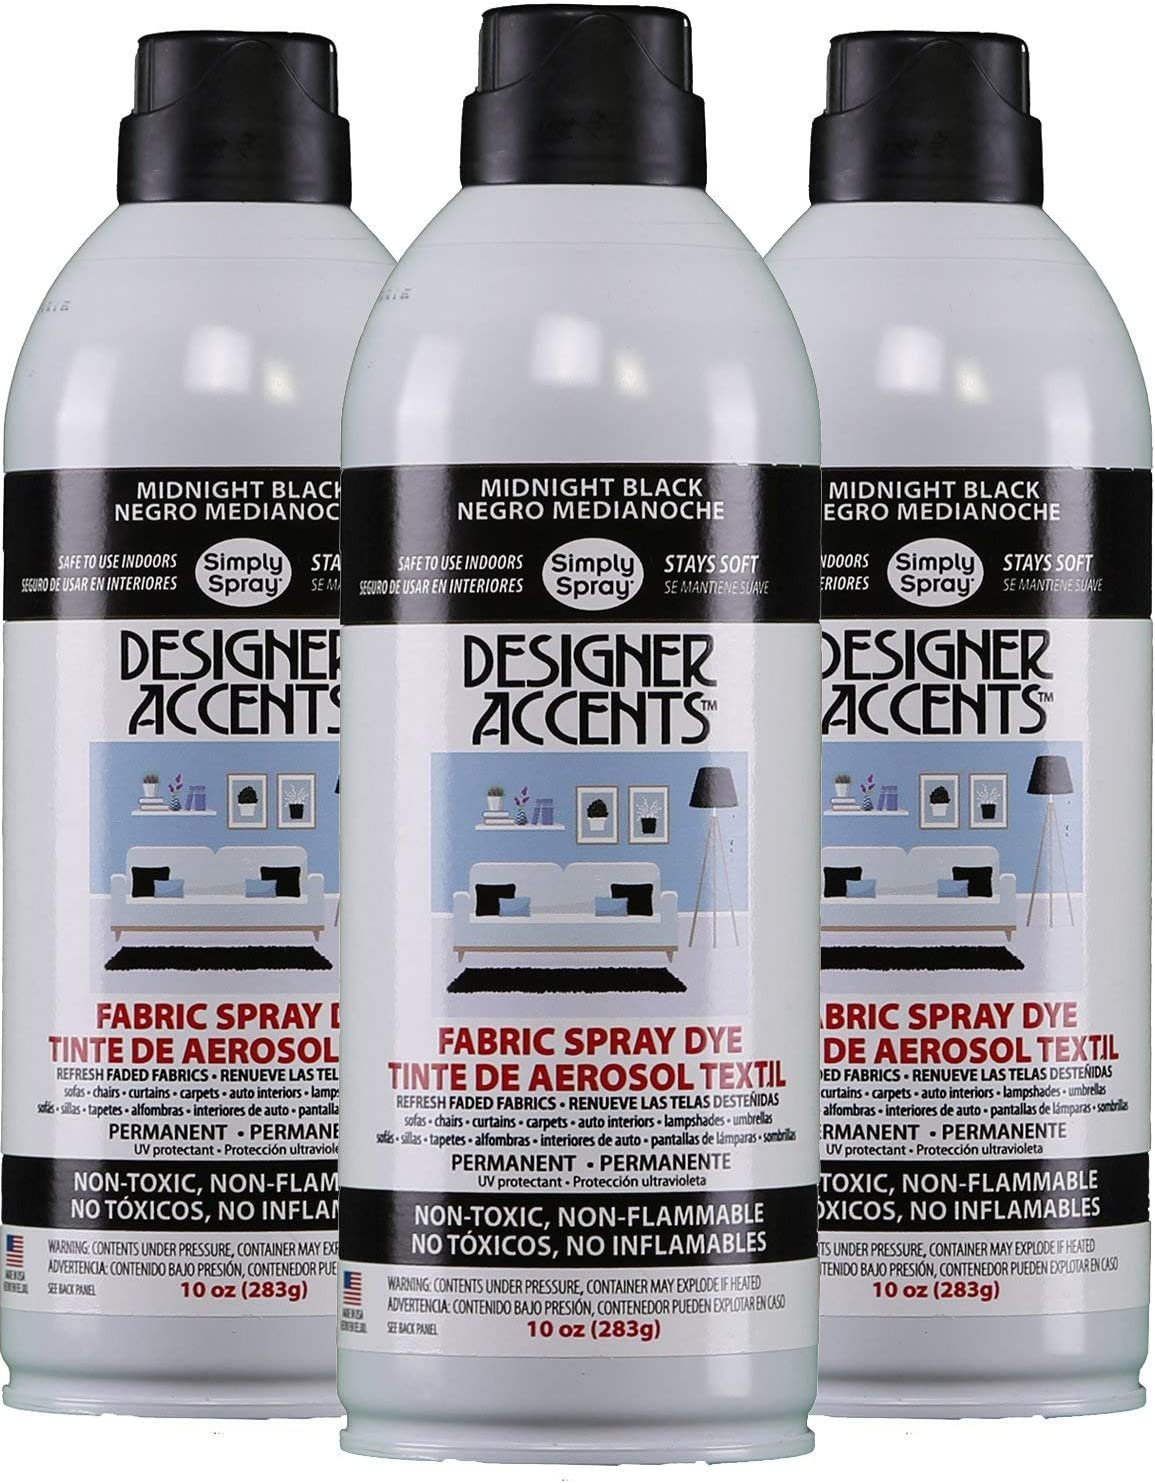 Designer Accents Fabric Paint Spray Dye by Simply Spray - Black (3)